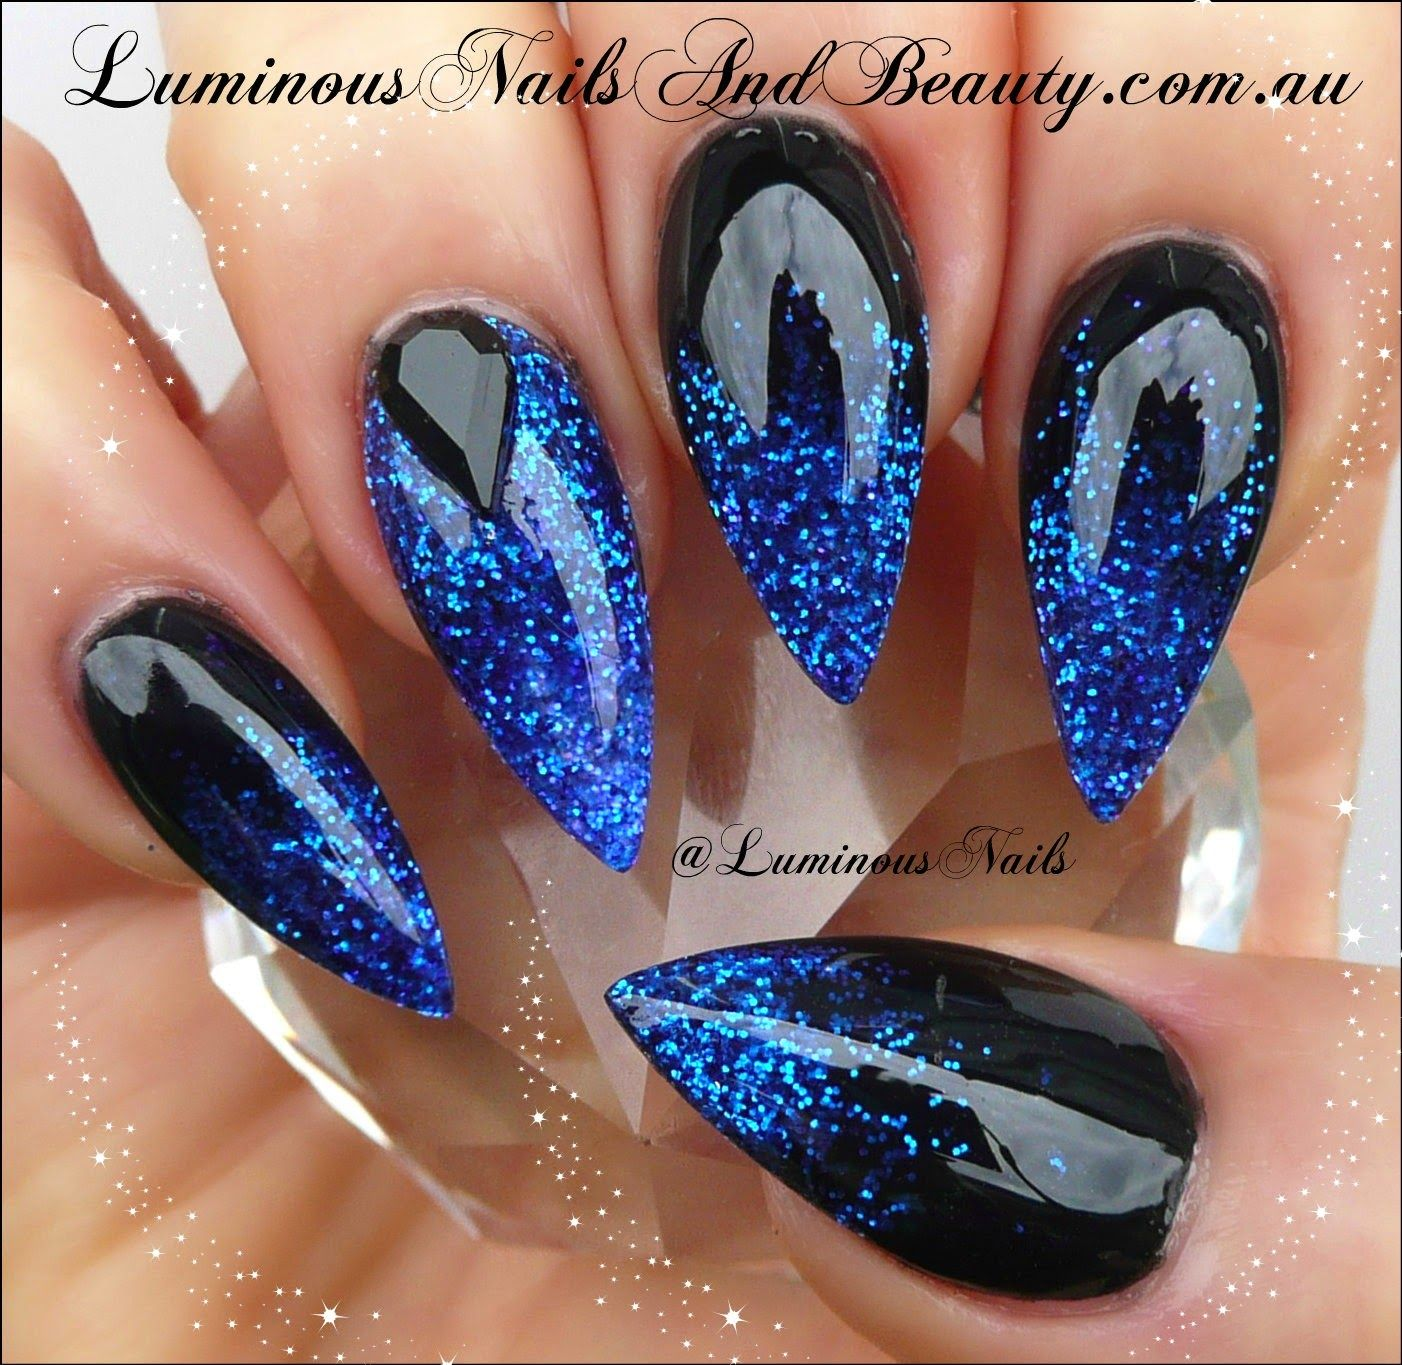 Blue And Black Stiletto Nails | Photos Images Ideas